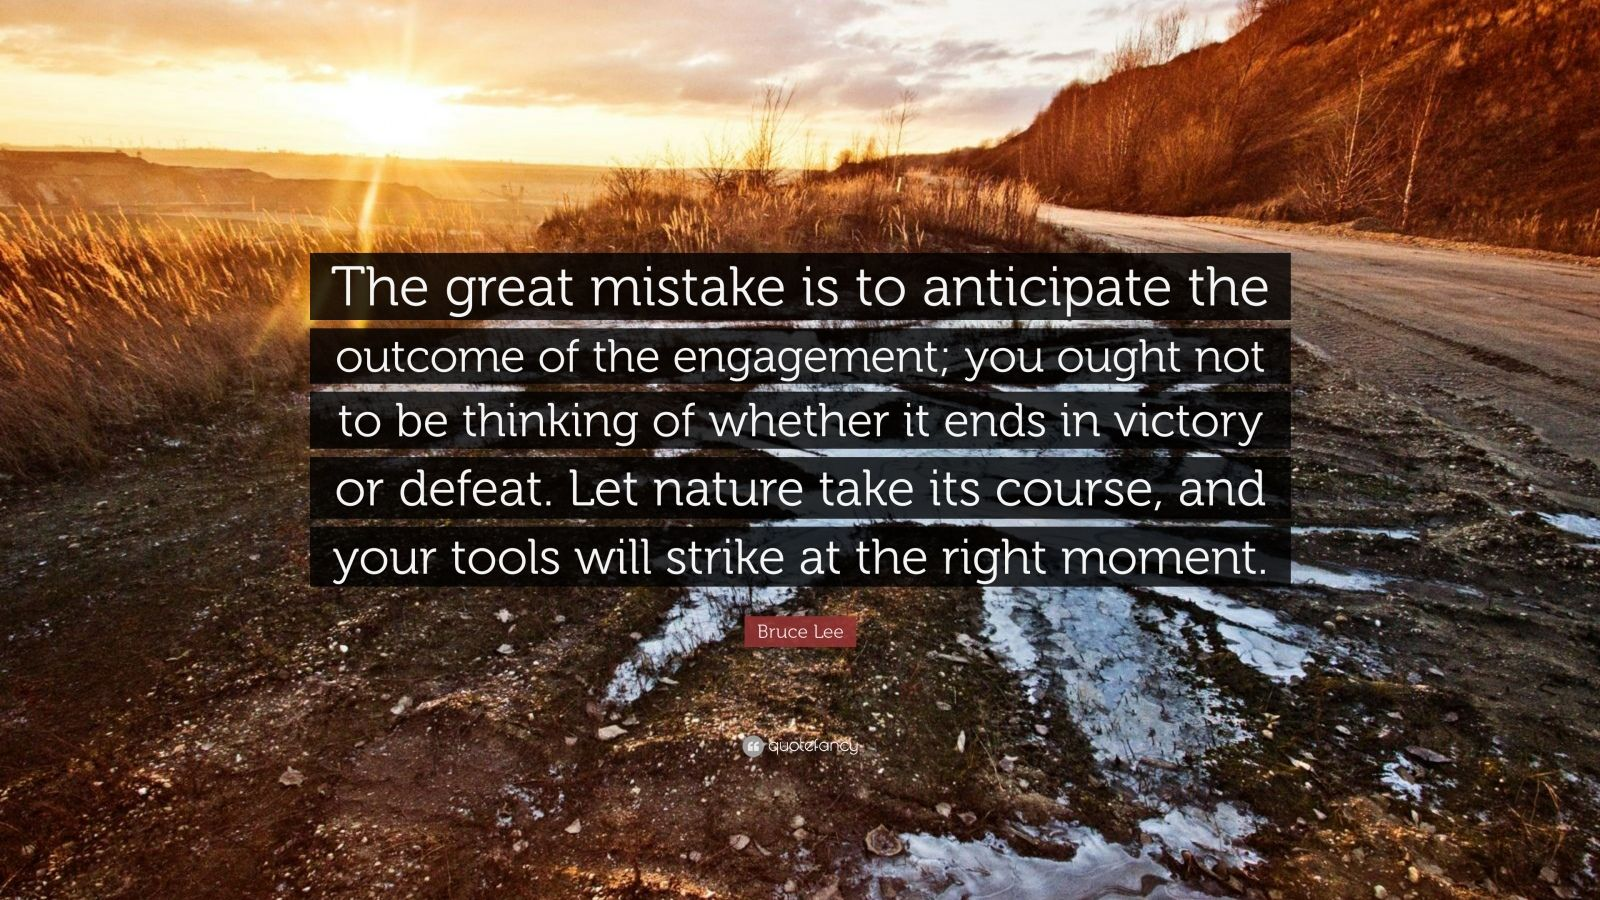 """Bruce Lee Quote: """"The great mistake is to anticipate the outcome of the engagement; you ought not to be thinking of whether it ends in victory or defeat. Let nature take its course, and your tools will strike at the right moment."""""""